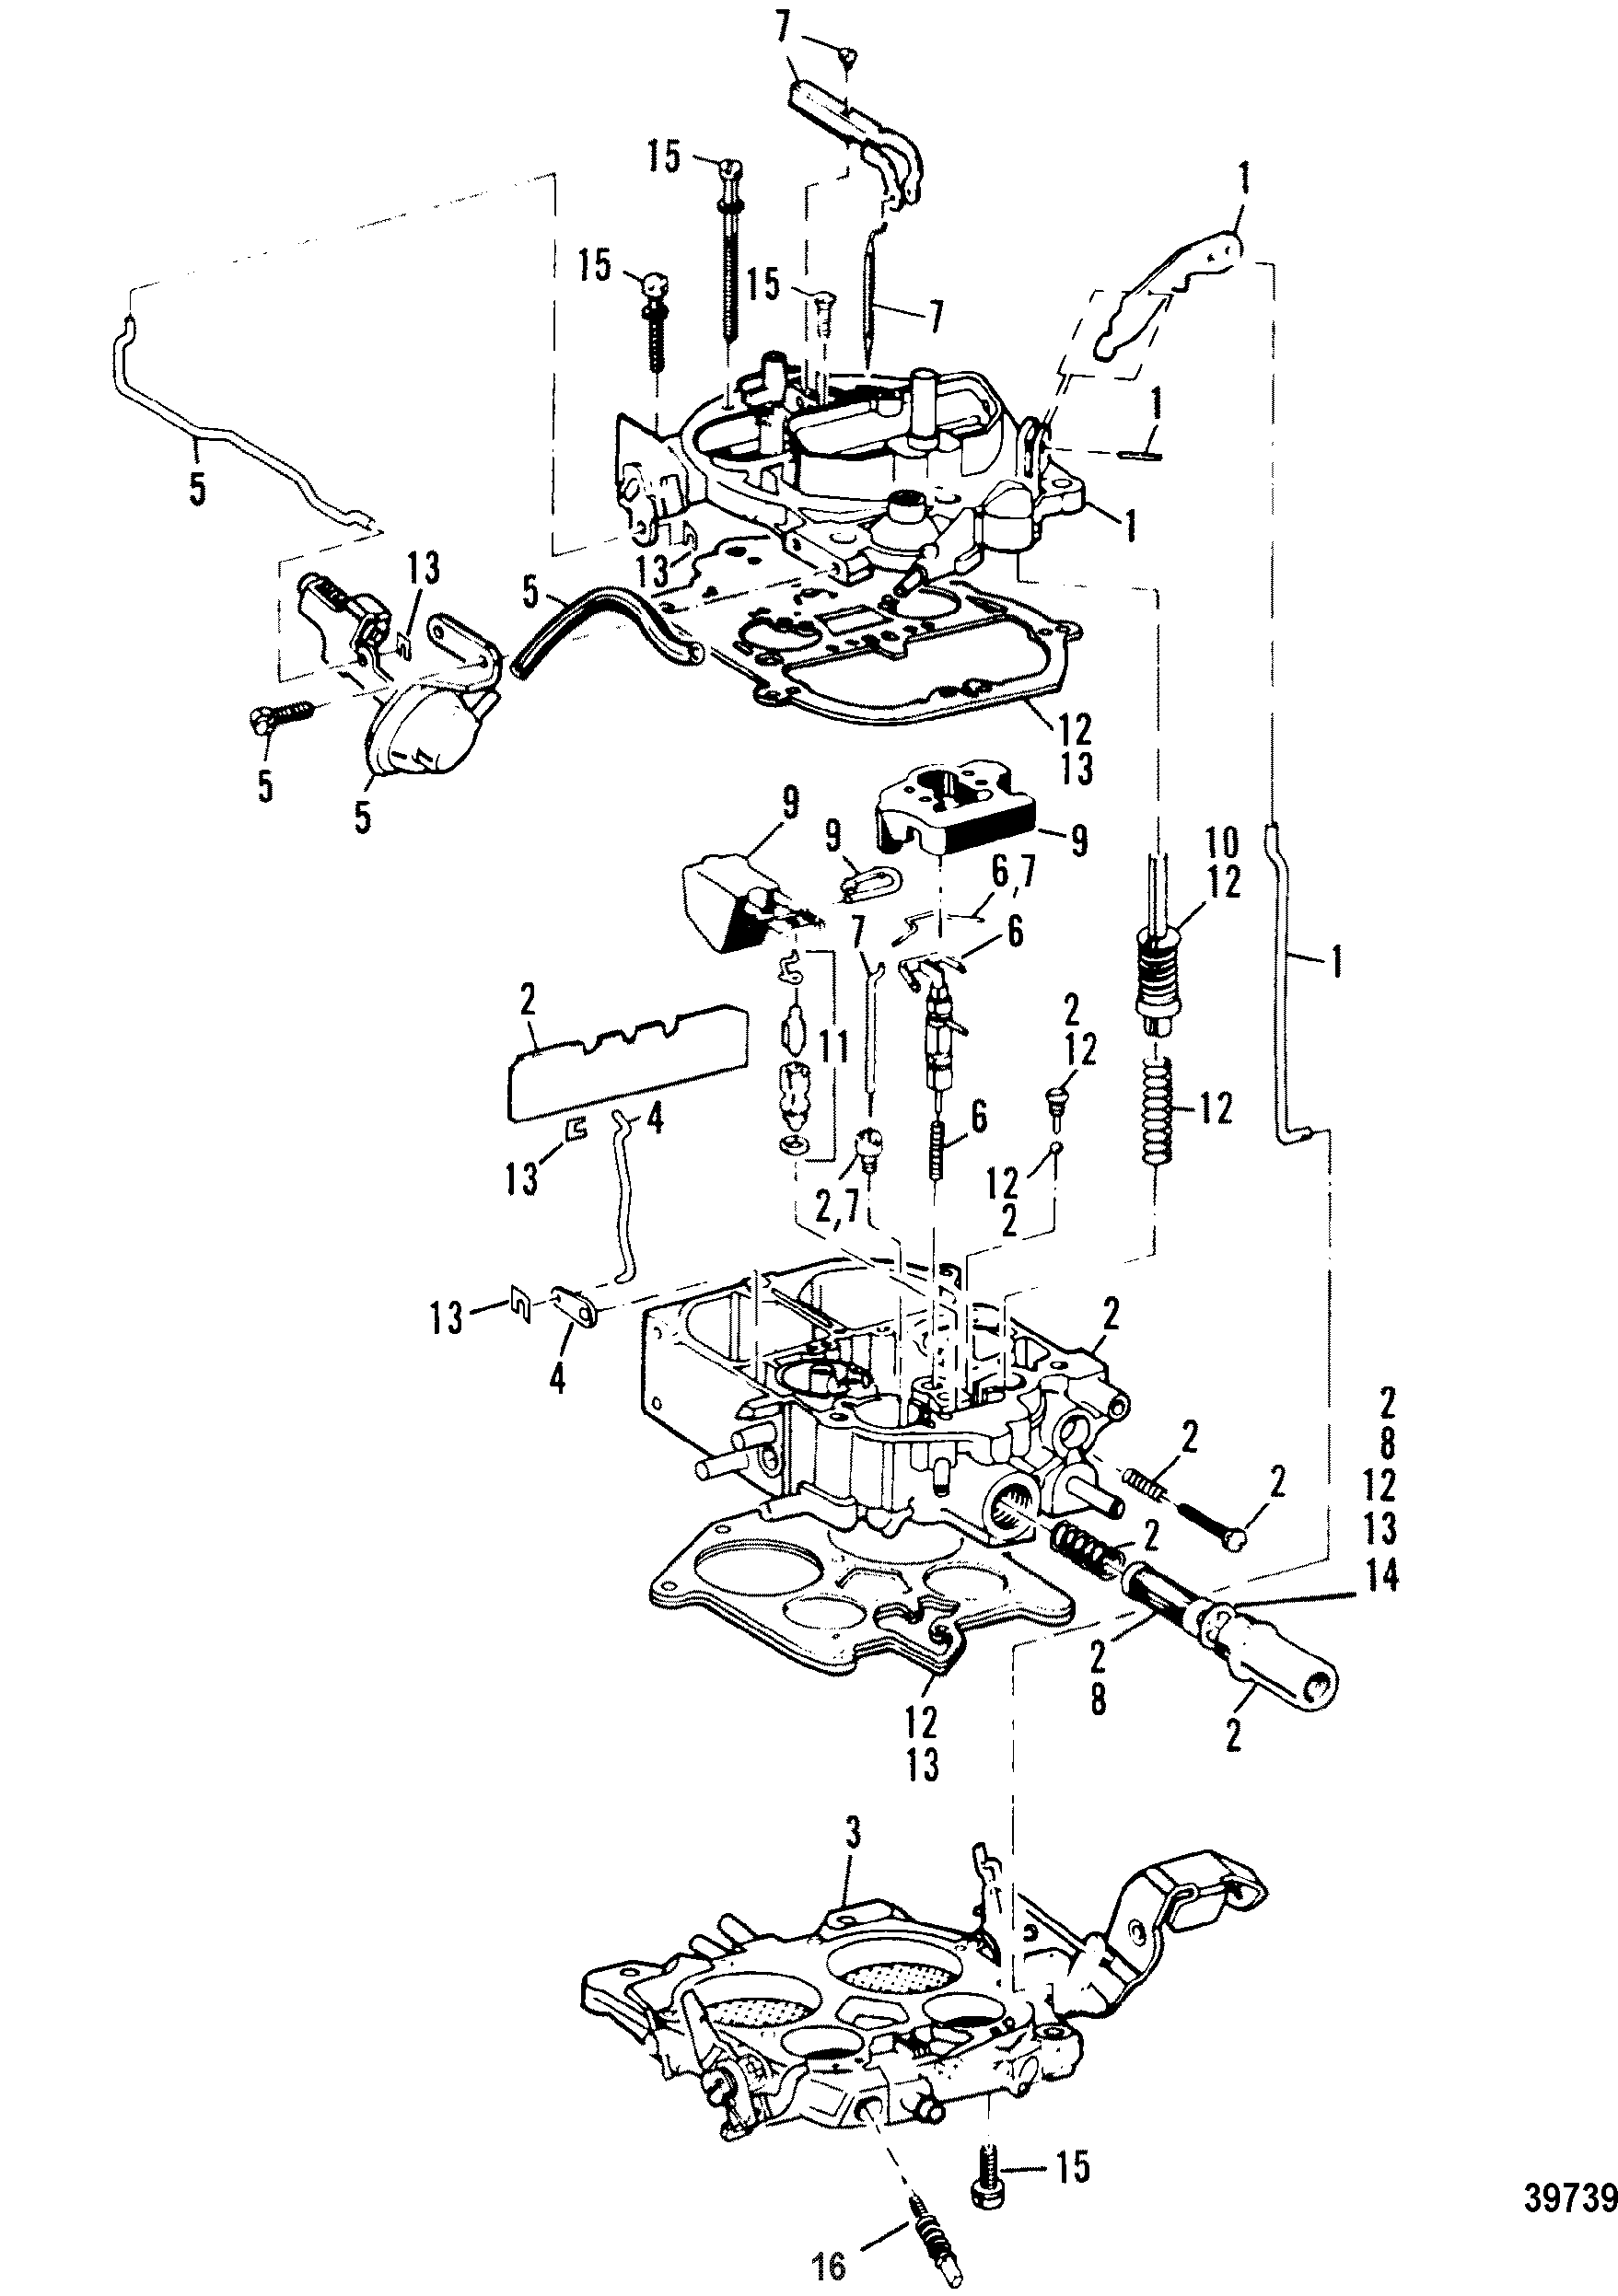 Carburetor For Mercruiser 7 4l Bravo